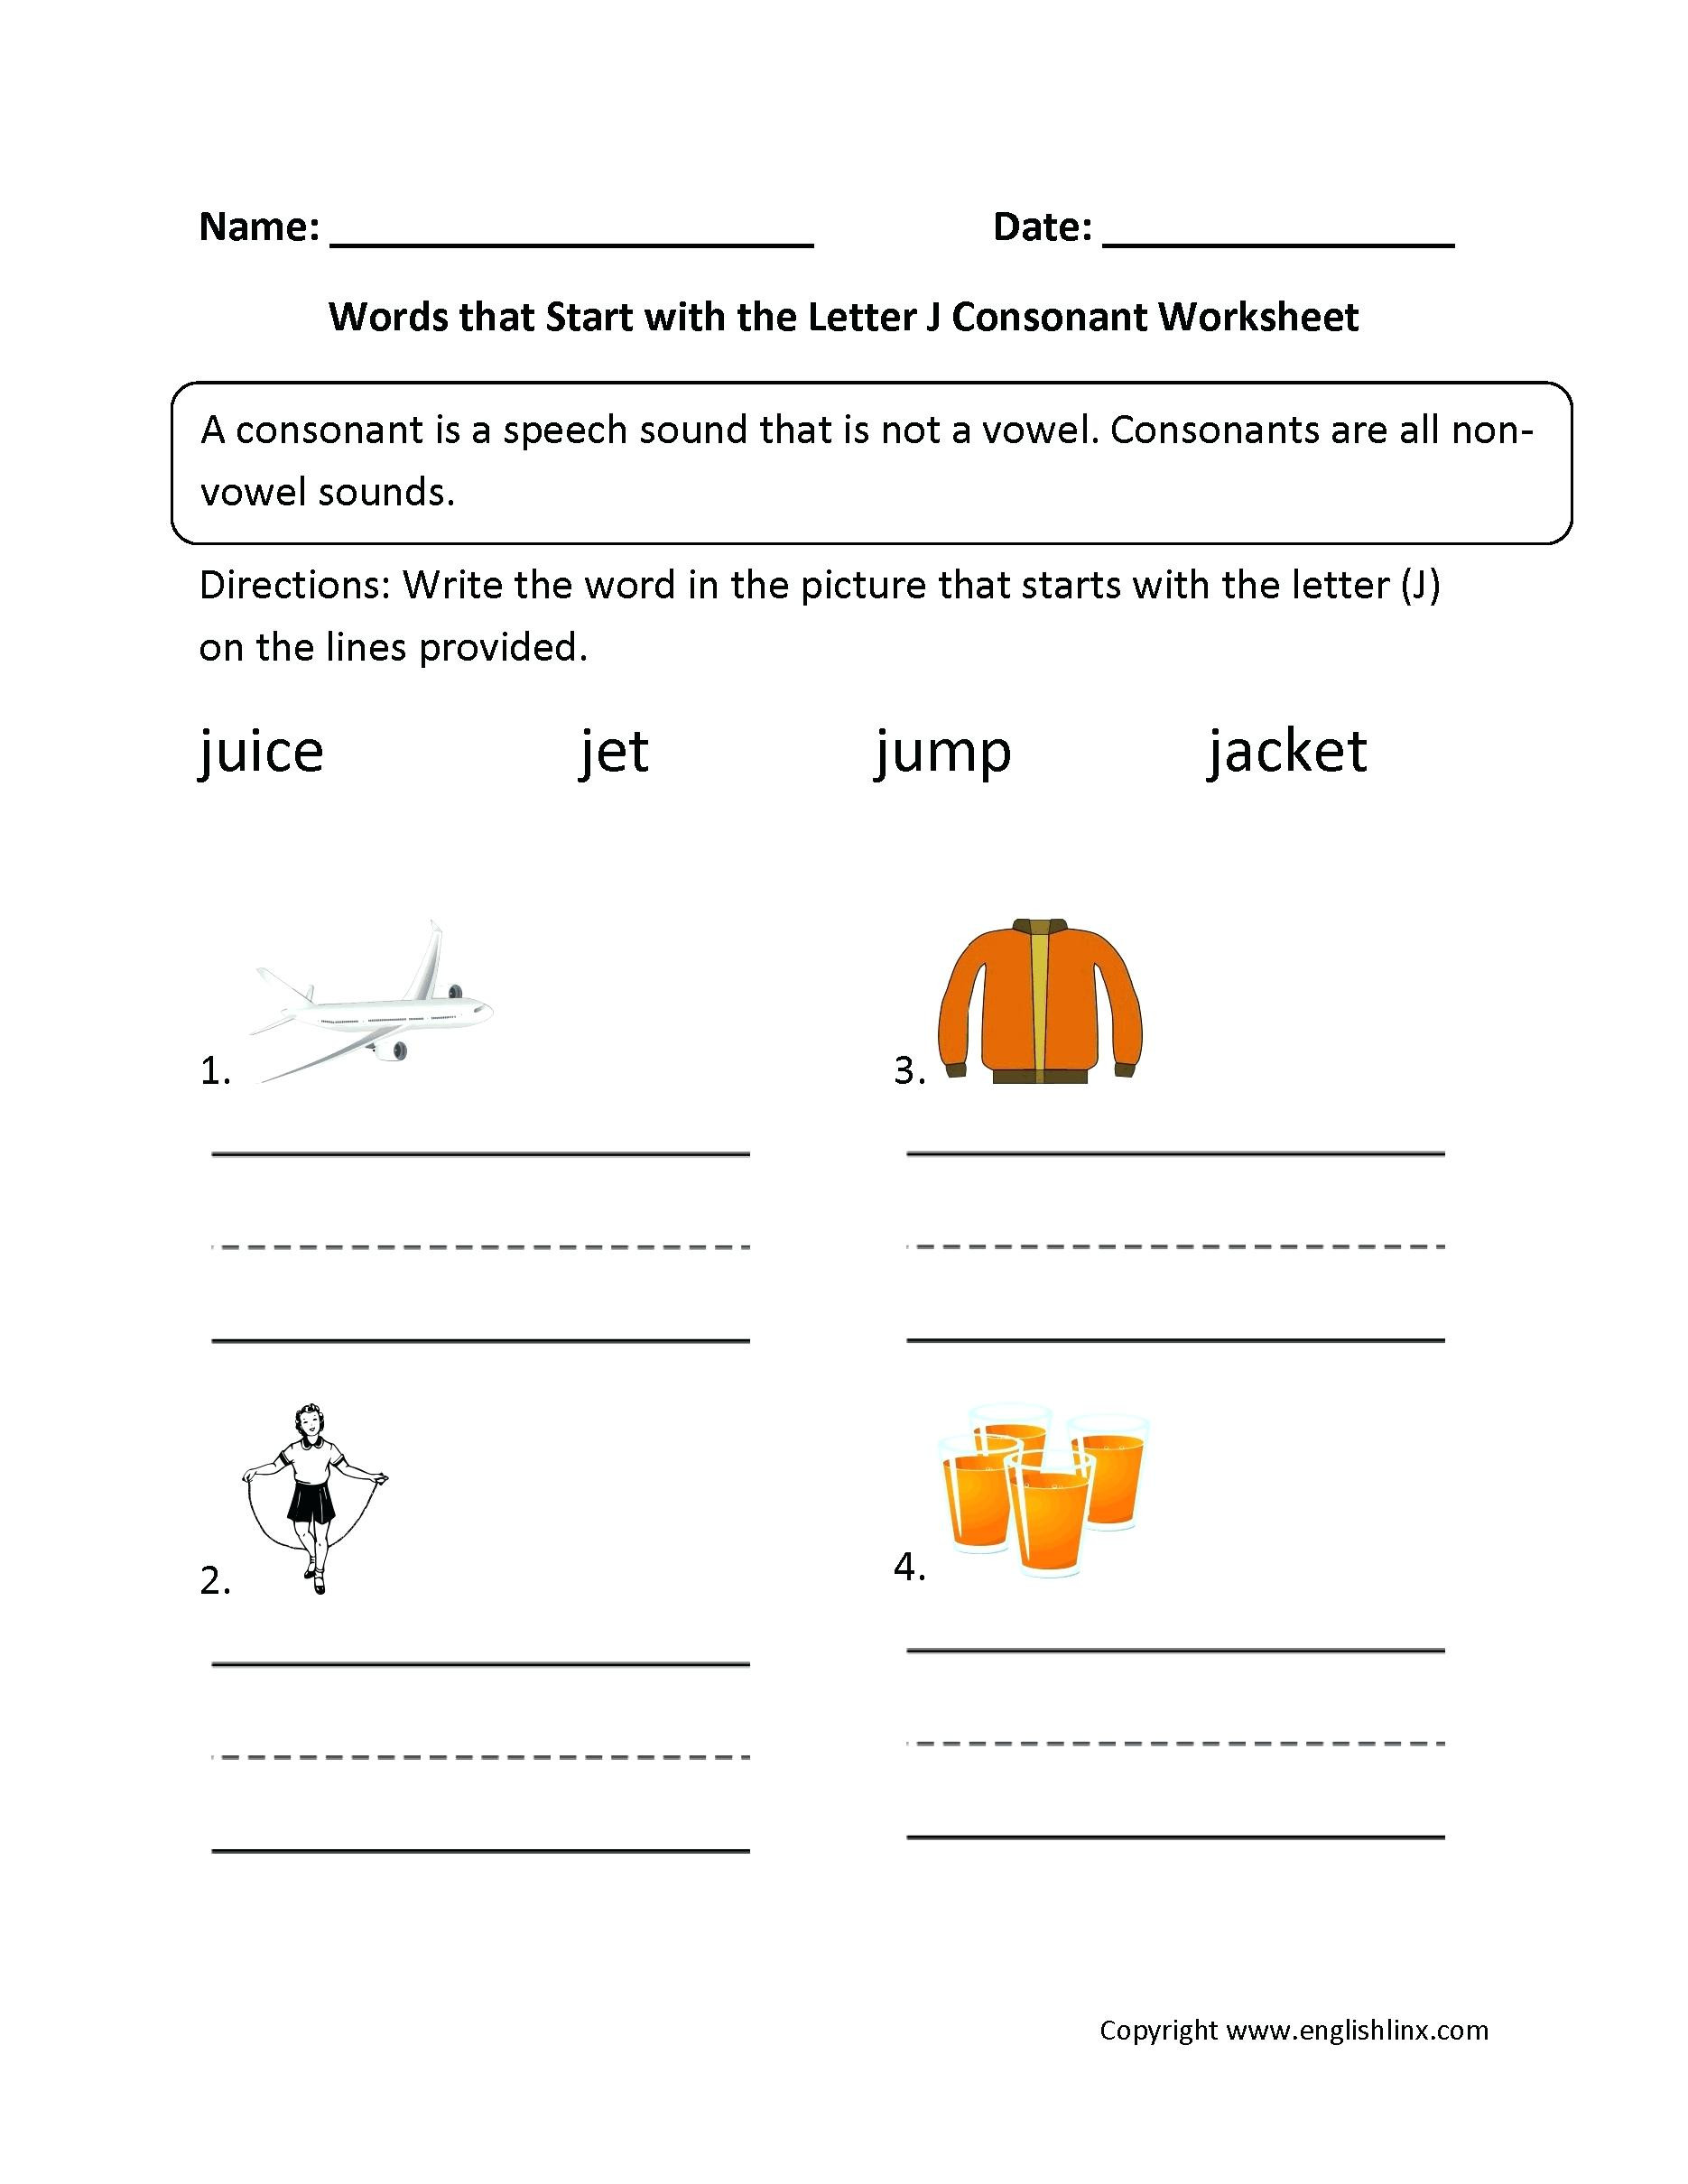 Spanish Kindergarten Worksheets Worksheet Easy Crafts for Small Kids Kindergarten Logo